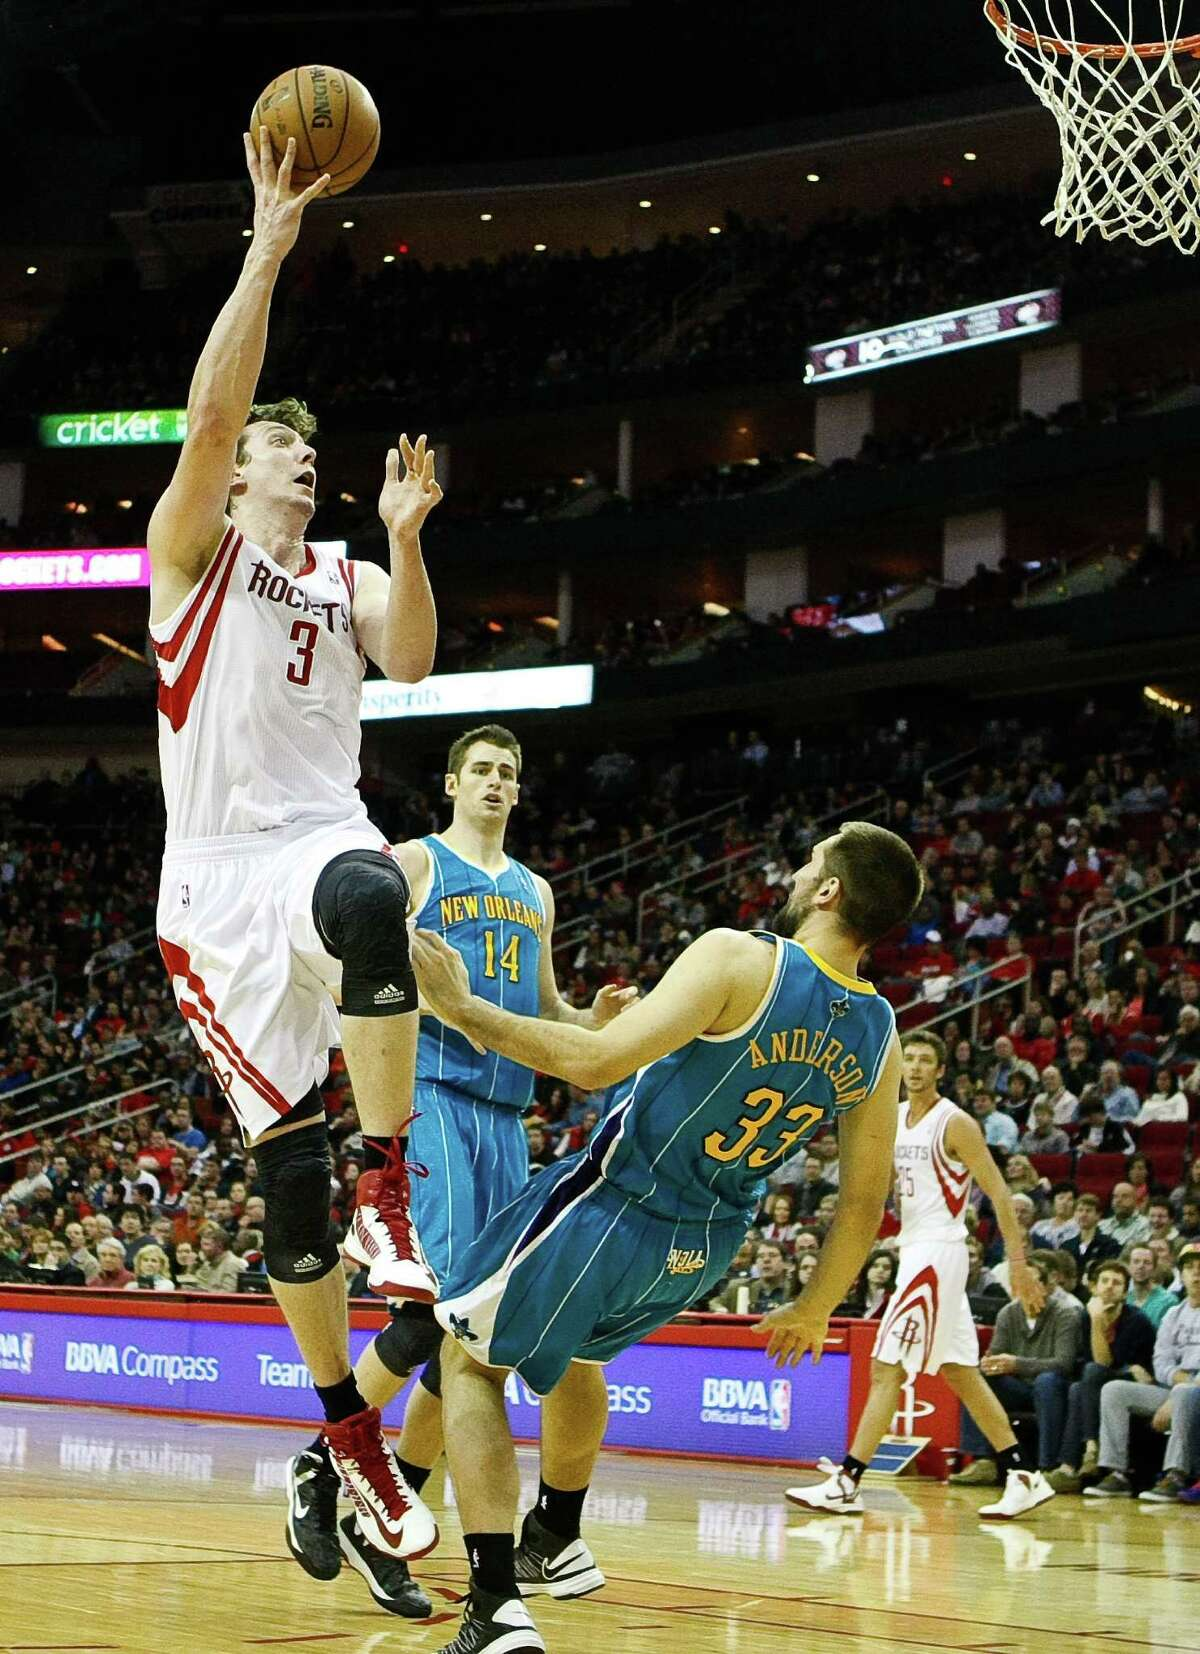 A move by Omer Asik (3) brings a fall from the Hornets' Ryan Anderson that could be interpreted as the type of flopping maneuver the NBA is trying to curb.